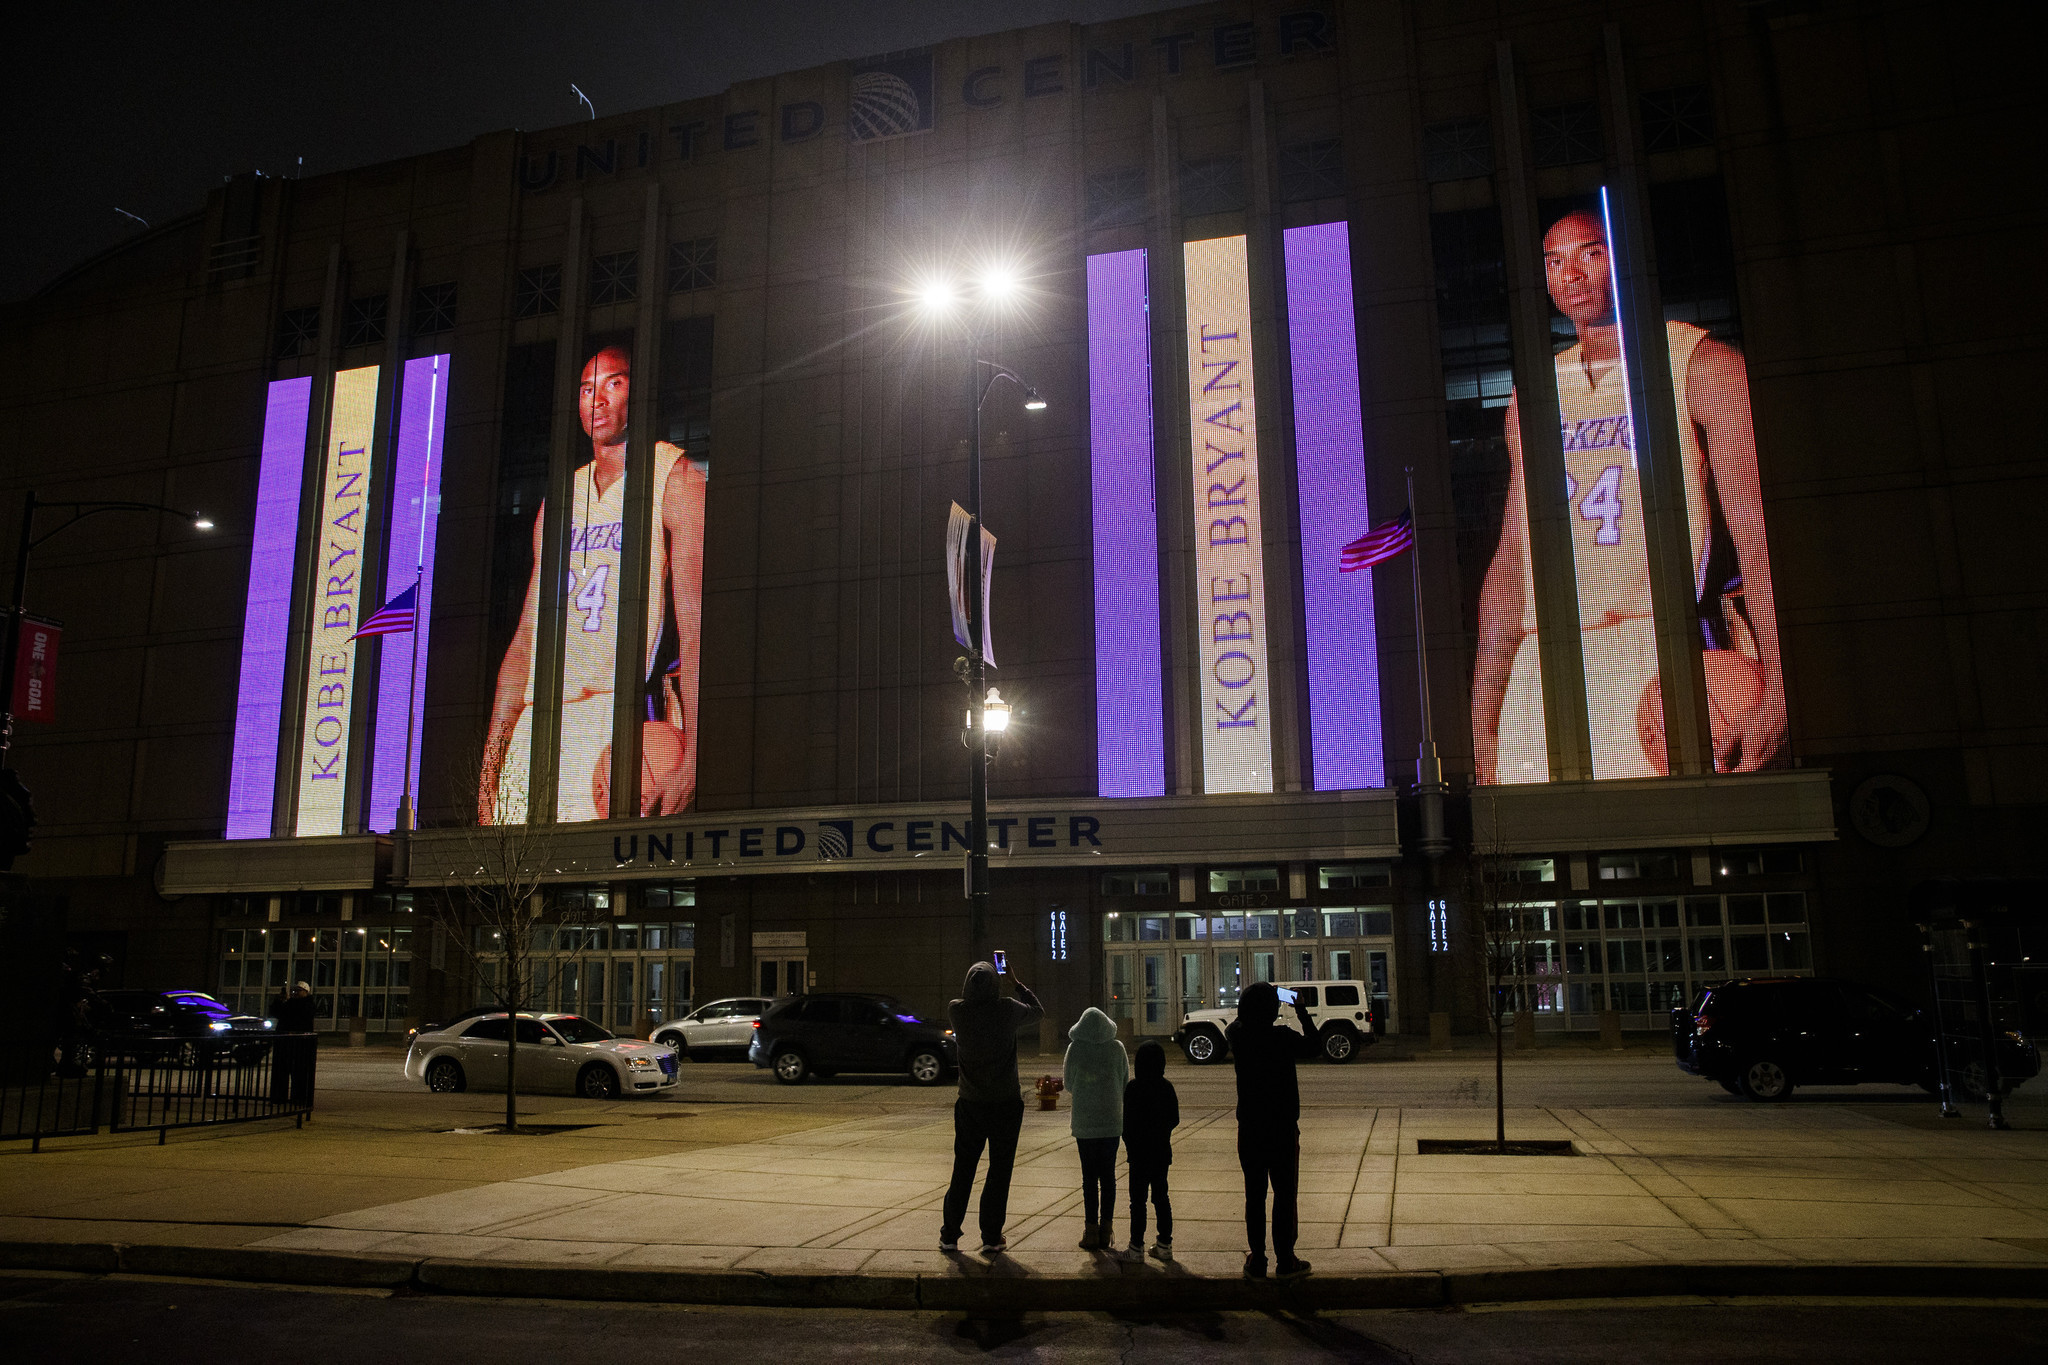 United Center goes purple and gold to honor Kobe Bryant